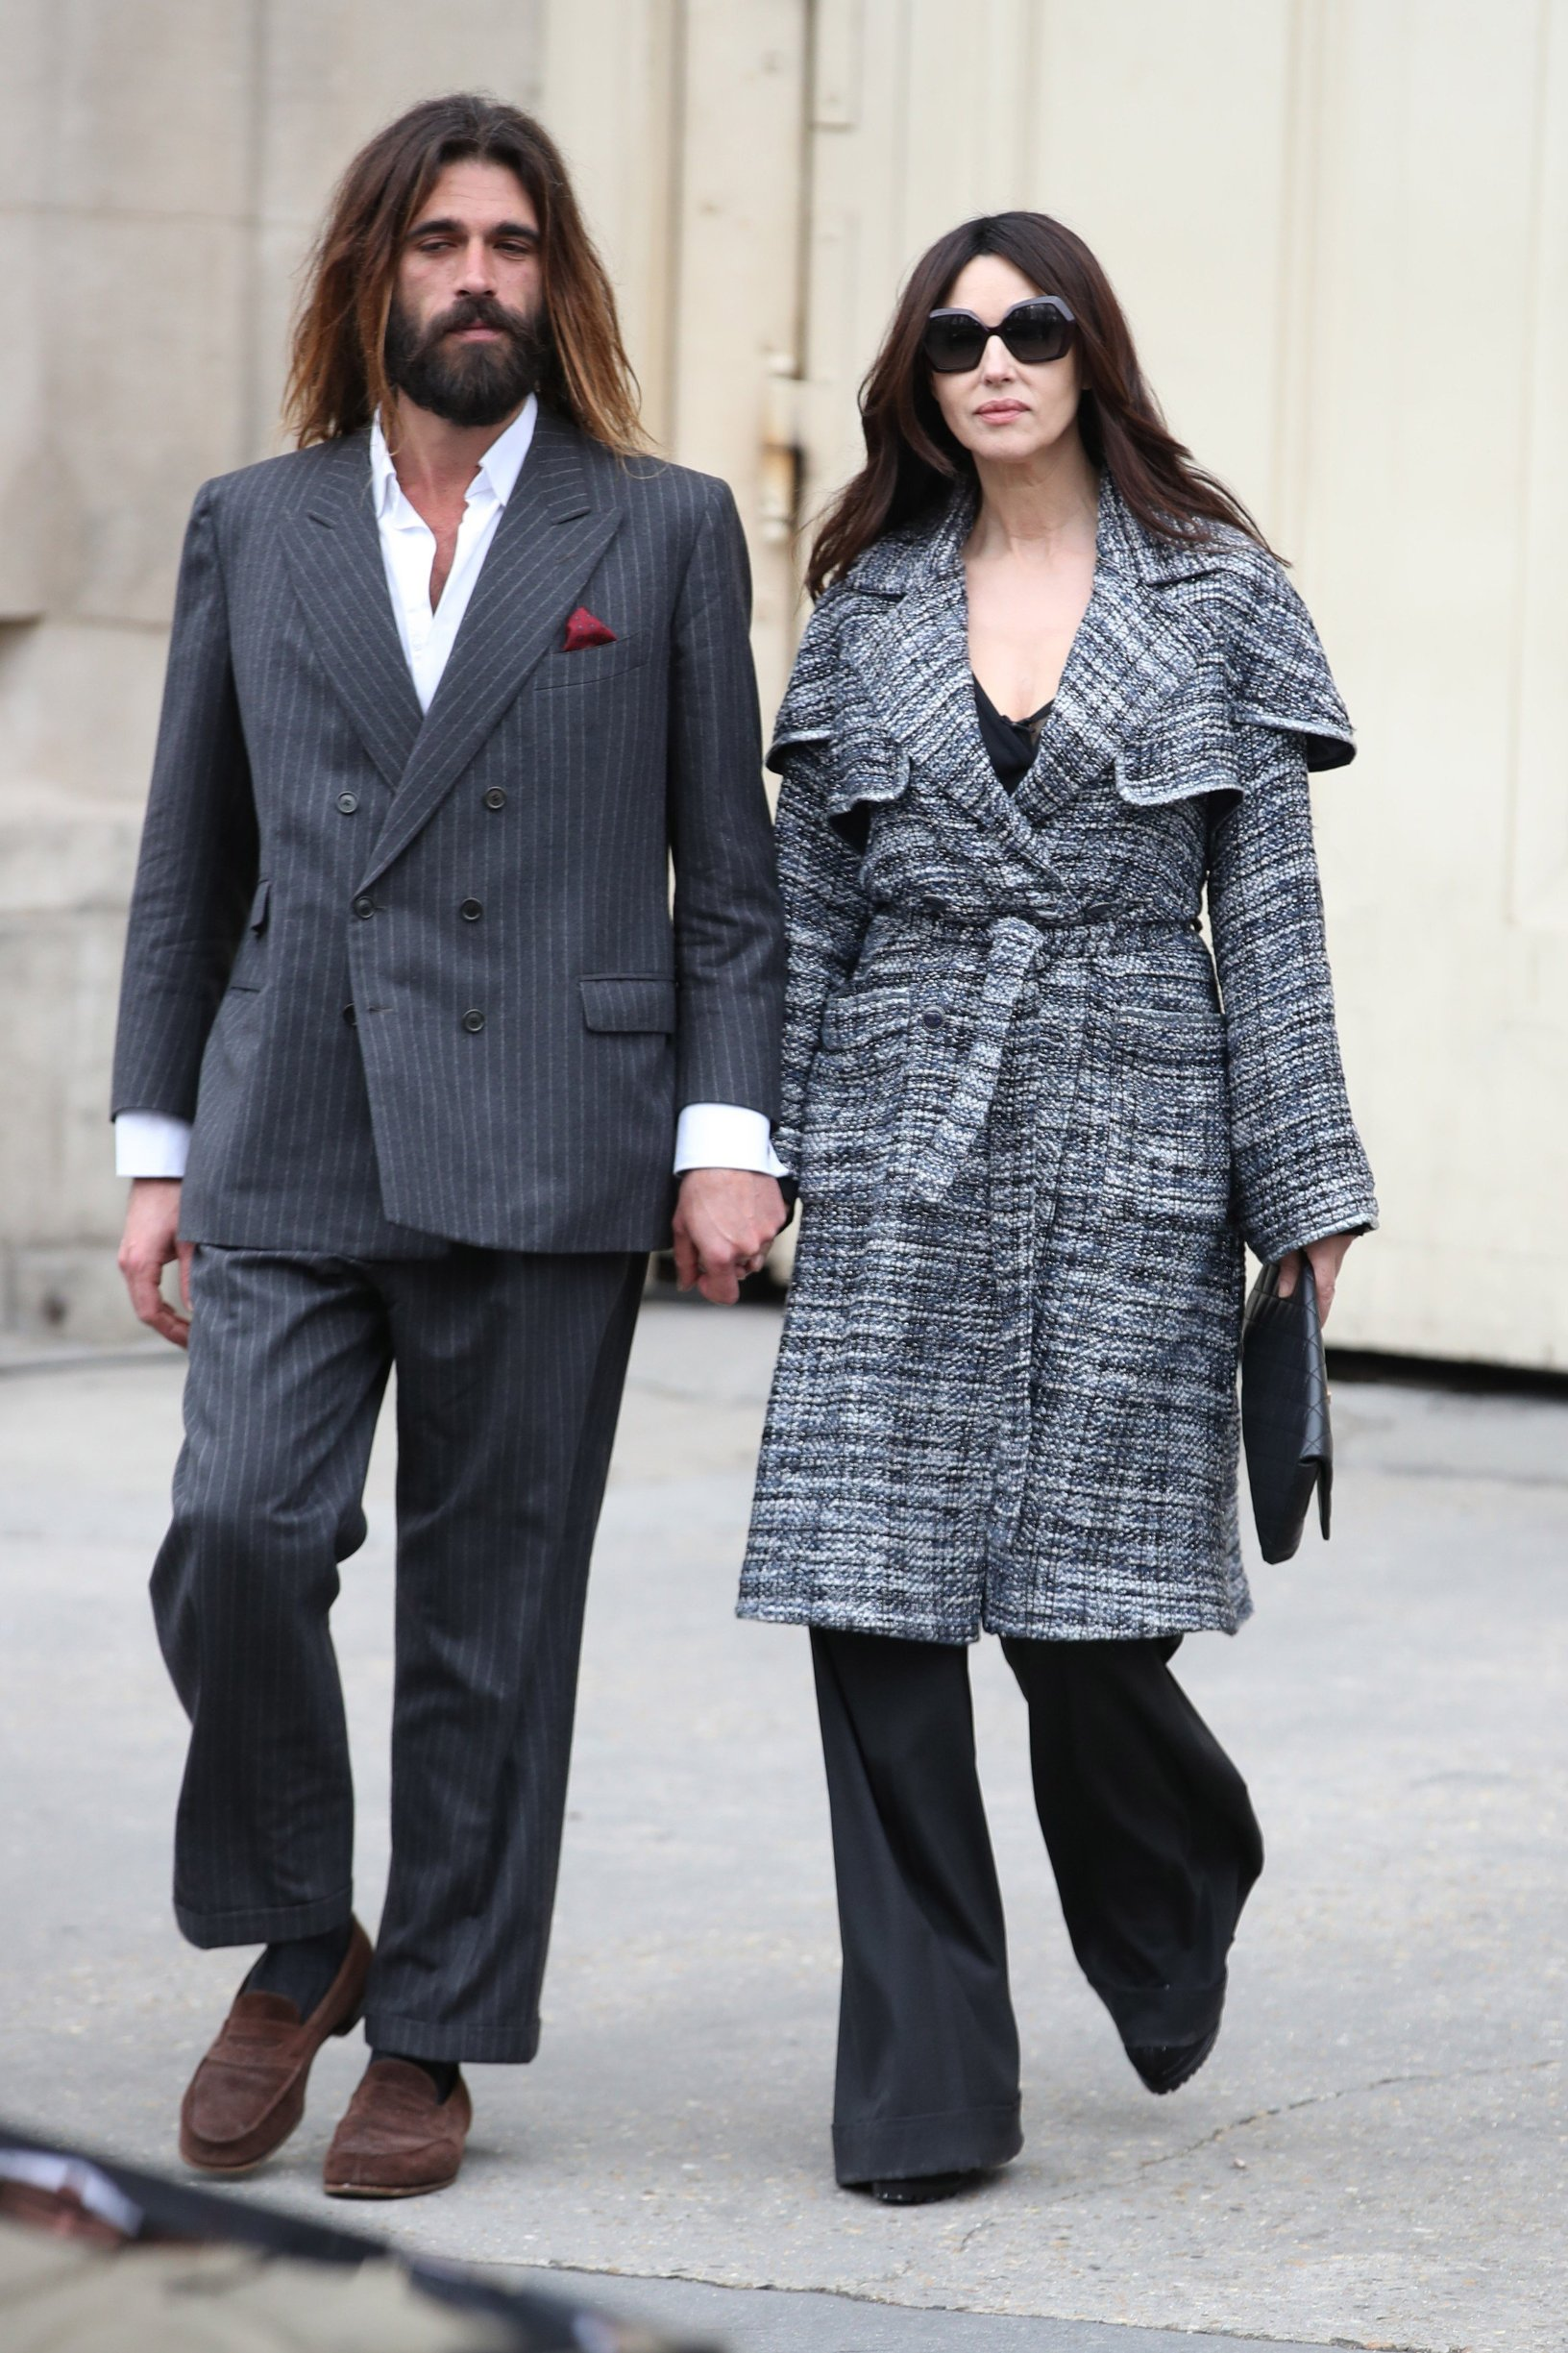 Monica Bellucci Chanel show, Departures, Fall Winter 2019, Paris Fashion Week, France - 05 Mar 2019, Image: 417350872, License: Rights-managed, Restrictions: , Model Release: no, Credit line: Profimedia, TEMP Rex Features